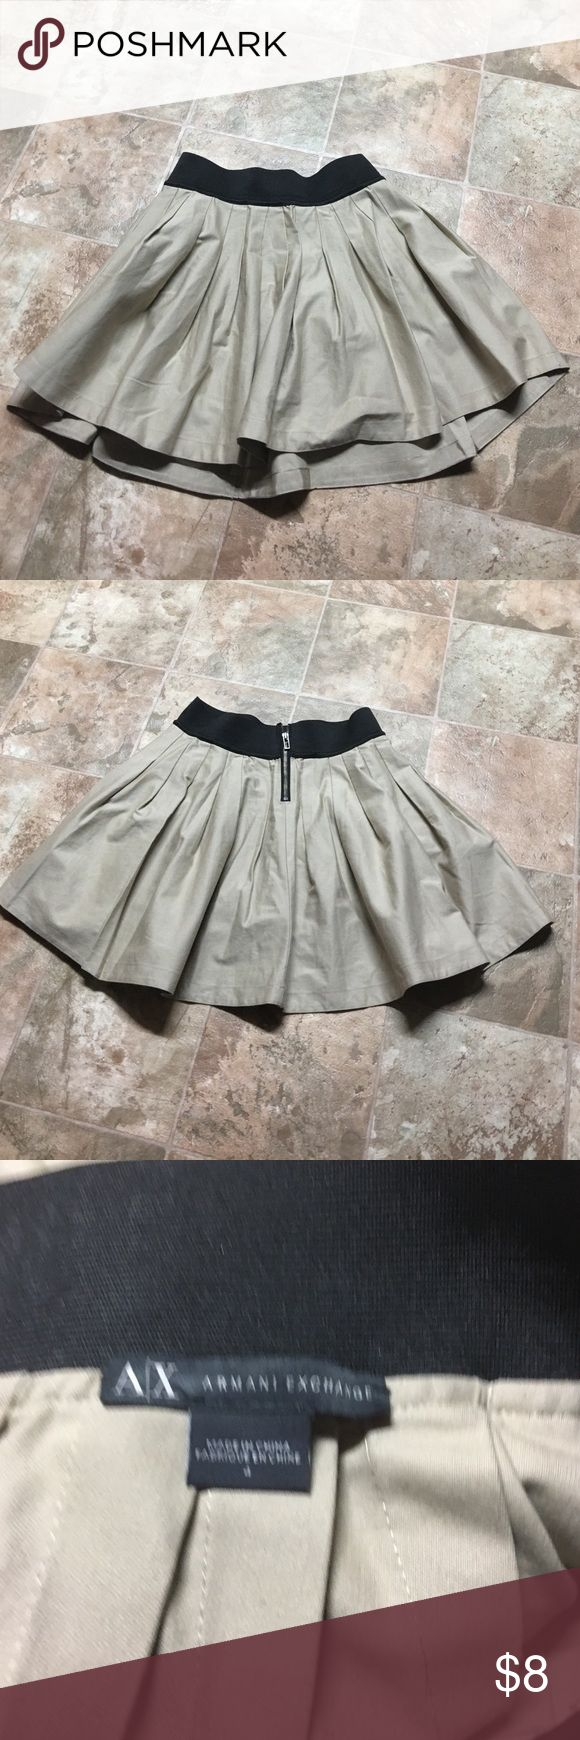 Armani exchange skirt Size for zipping back. Elastic waist 24 inches - length 17. Armani Exchange Skirts